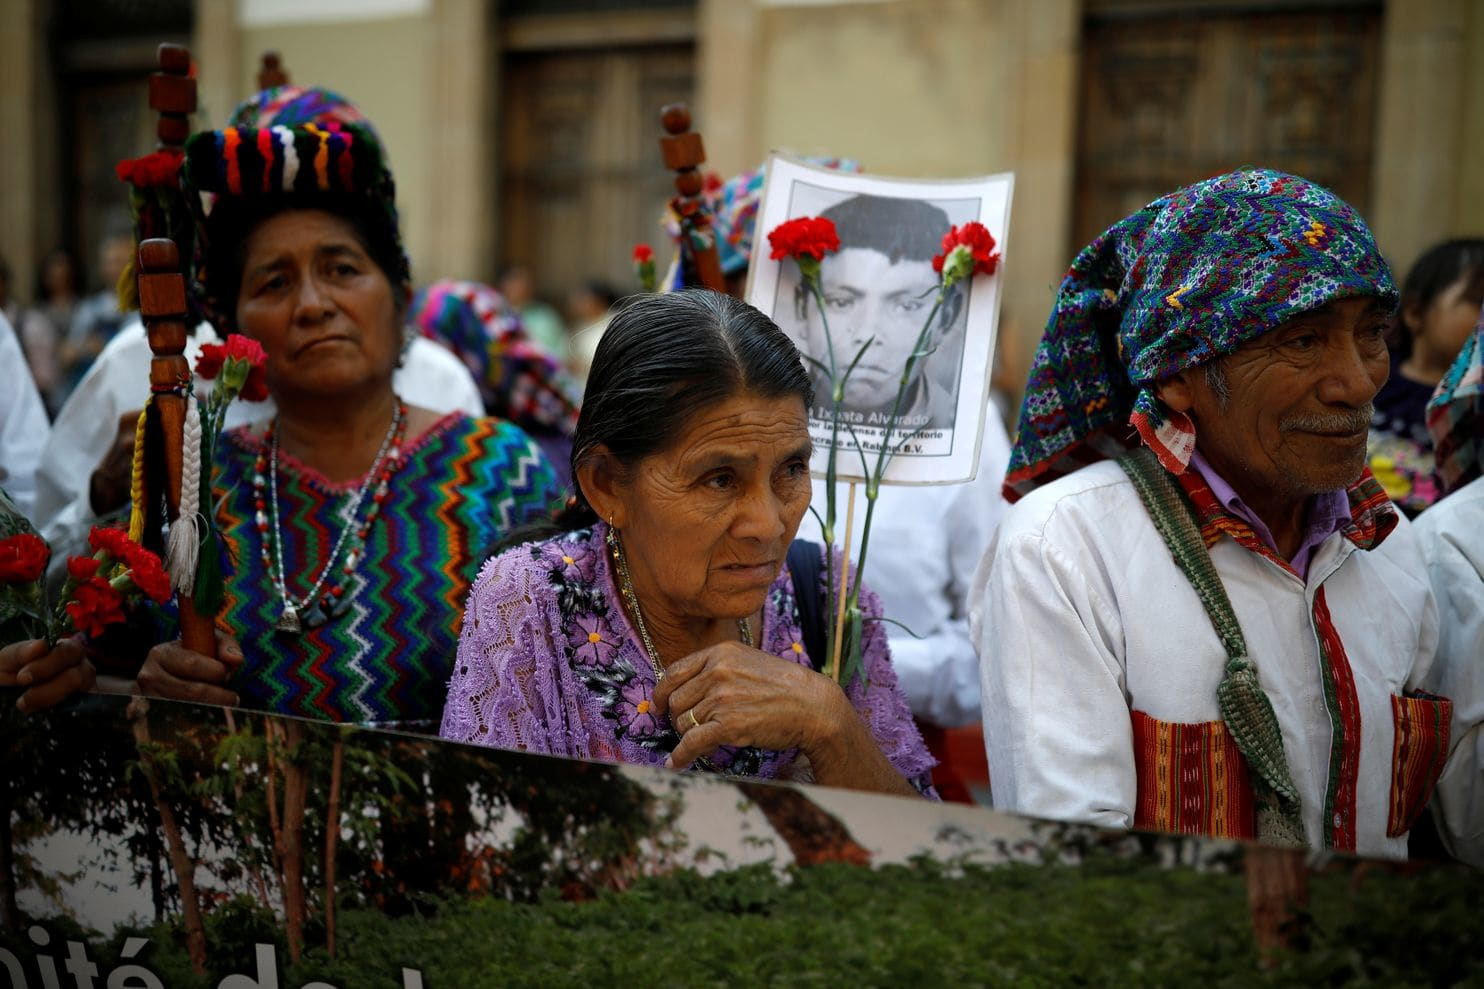 Massacre in Guatemala - The Washington Post